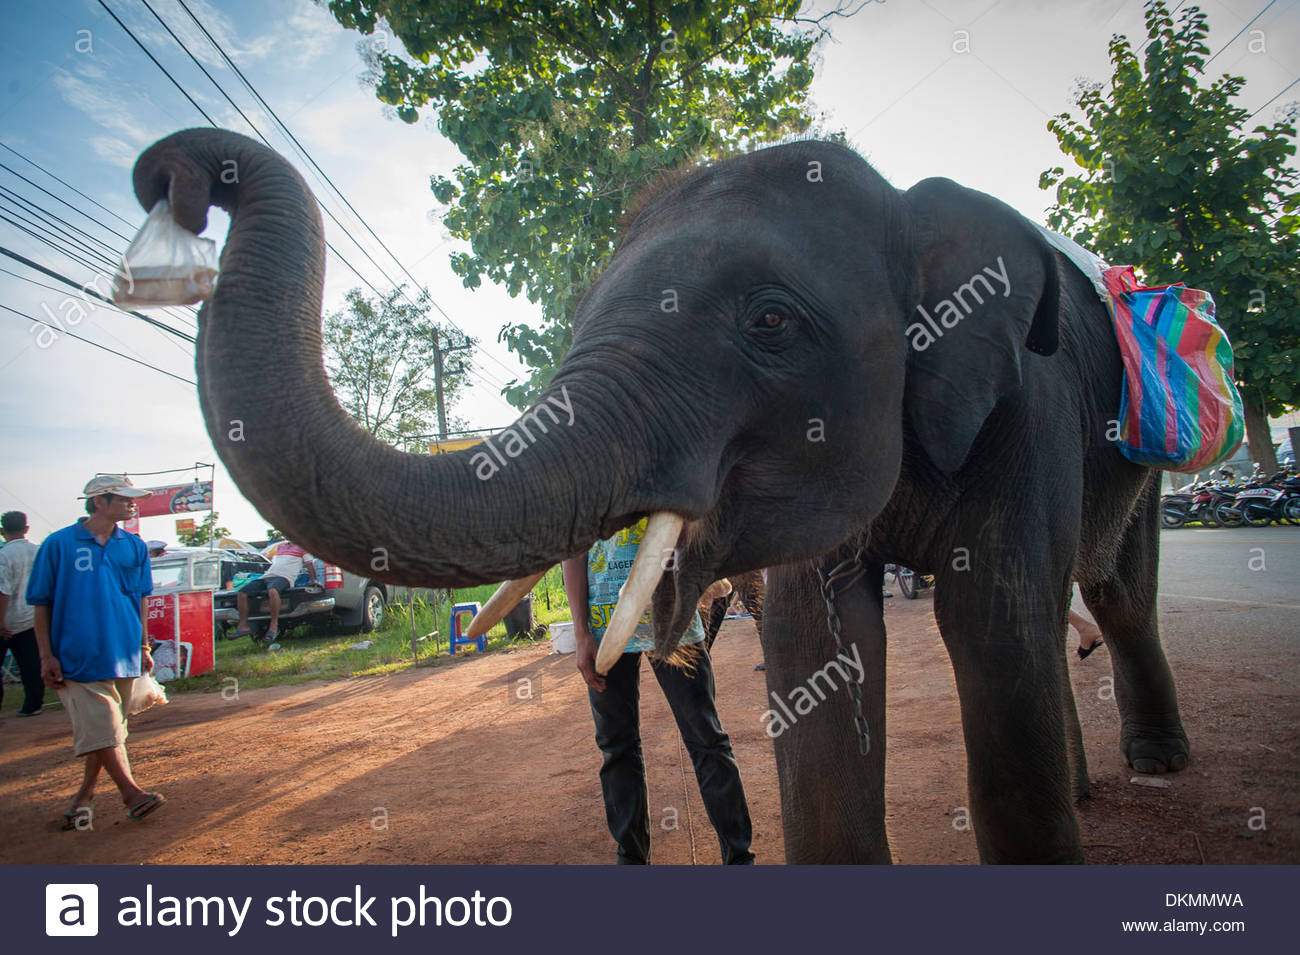 Street Beggar Elephants at Uttarardit Night Market, Thailand. Offering sugar kane for sale to be then fed back to the elephant. - Stock Image